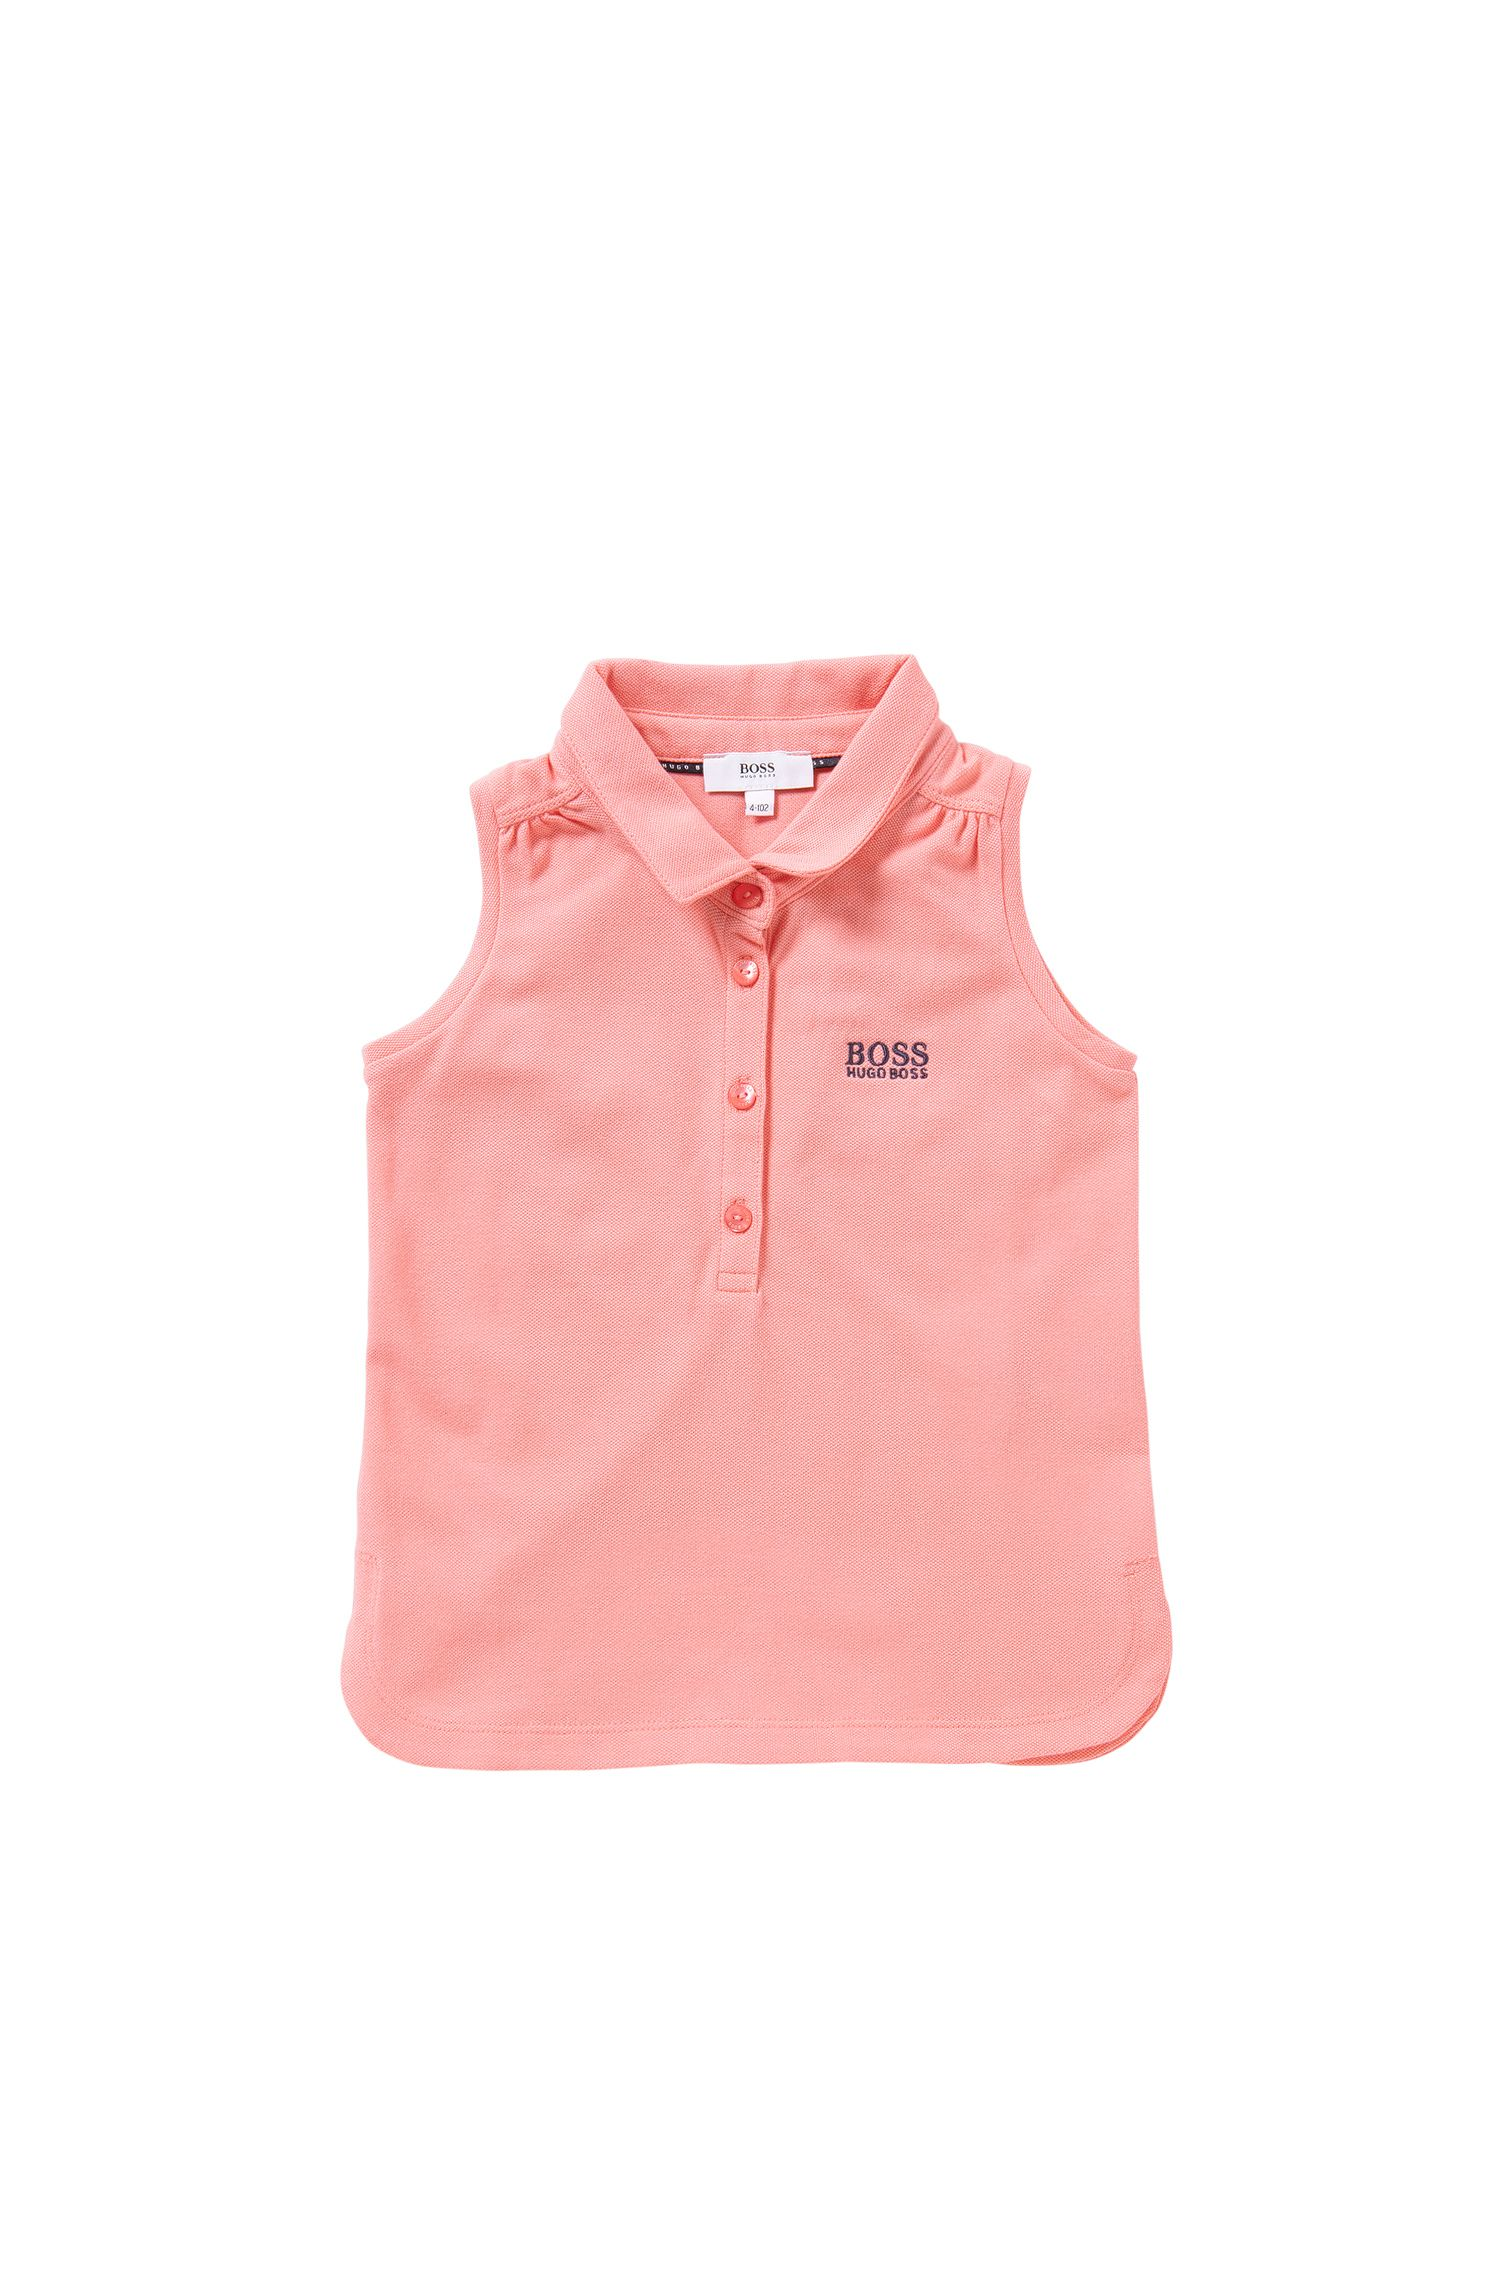 Sleeveless kids' polo shirt in stretch cotton: 'J15344'